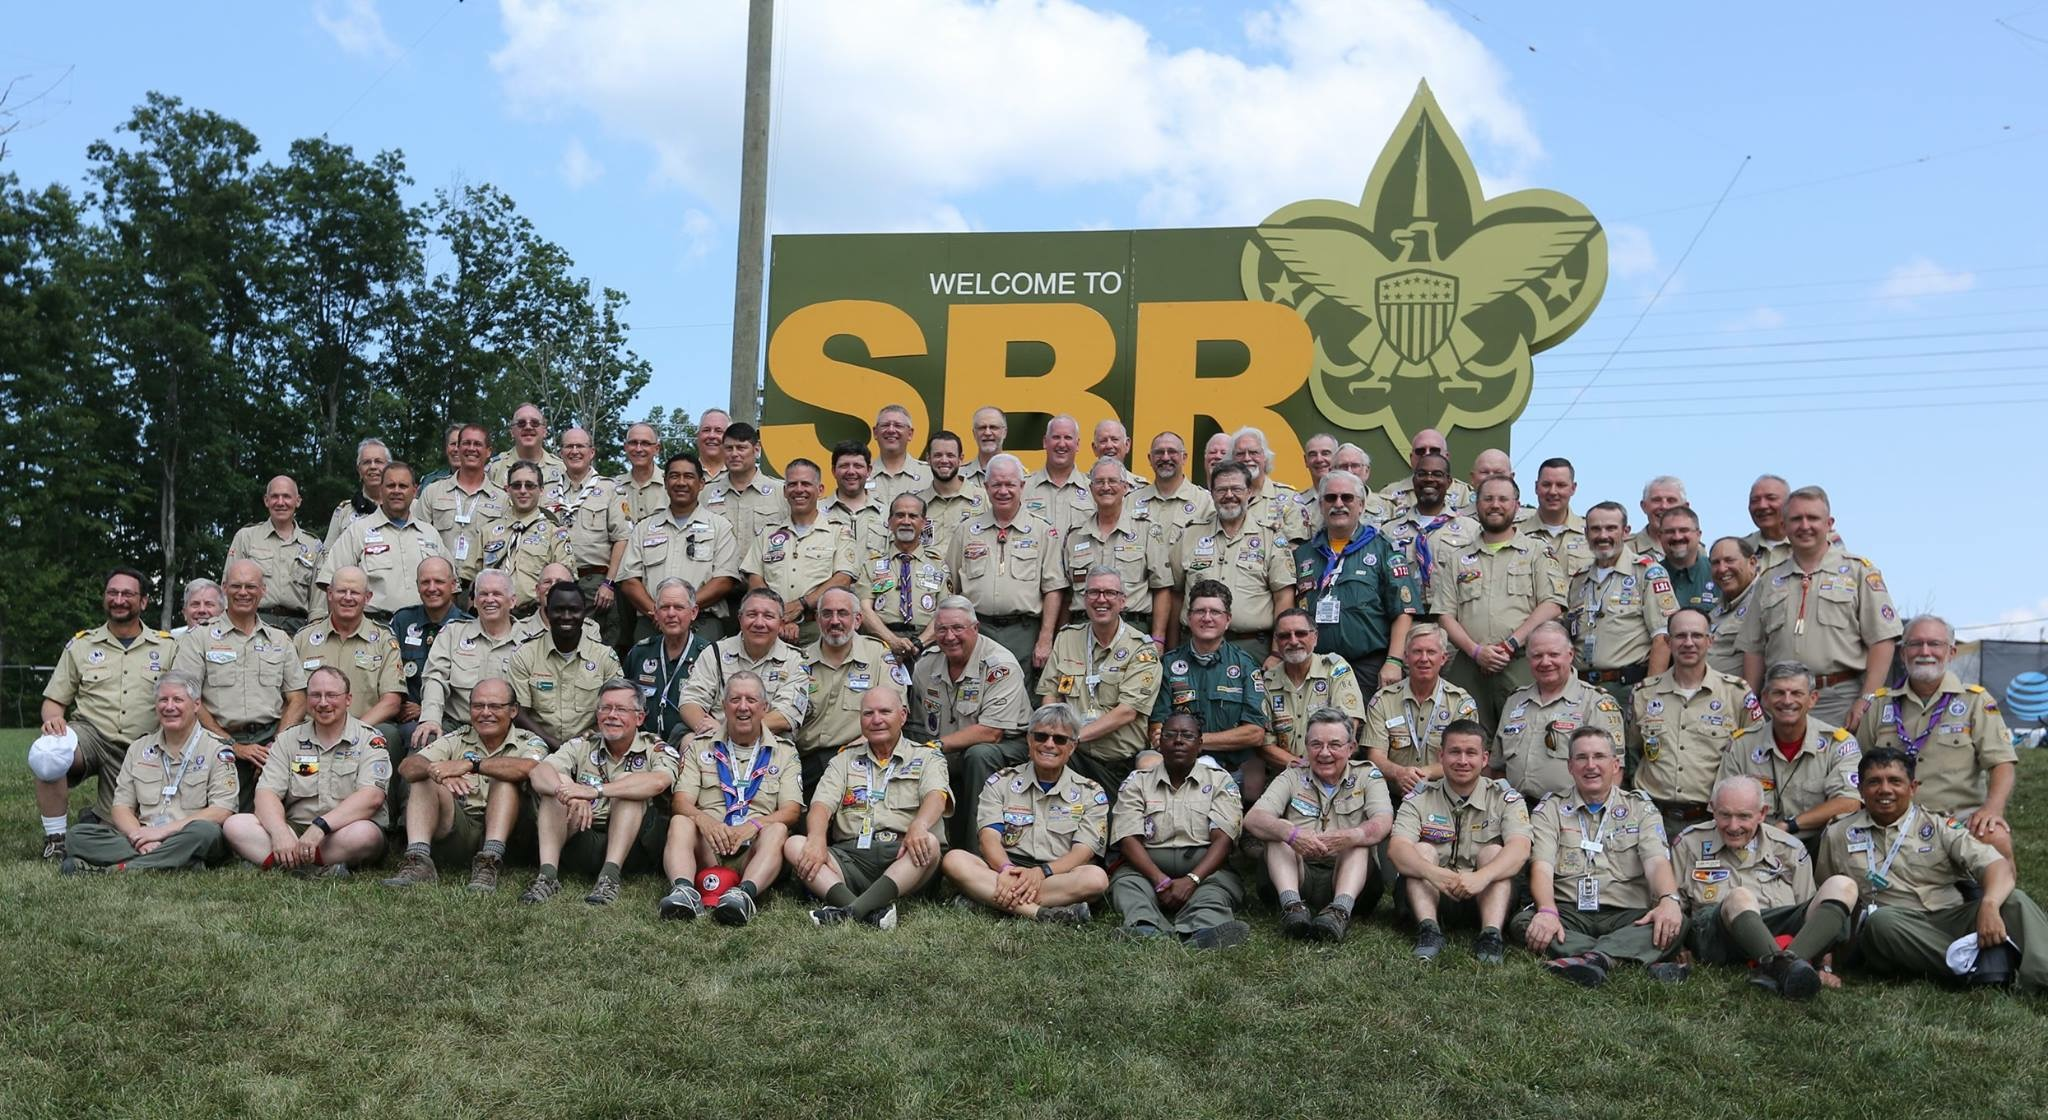 Jambo chaplain group picture